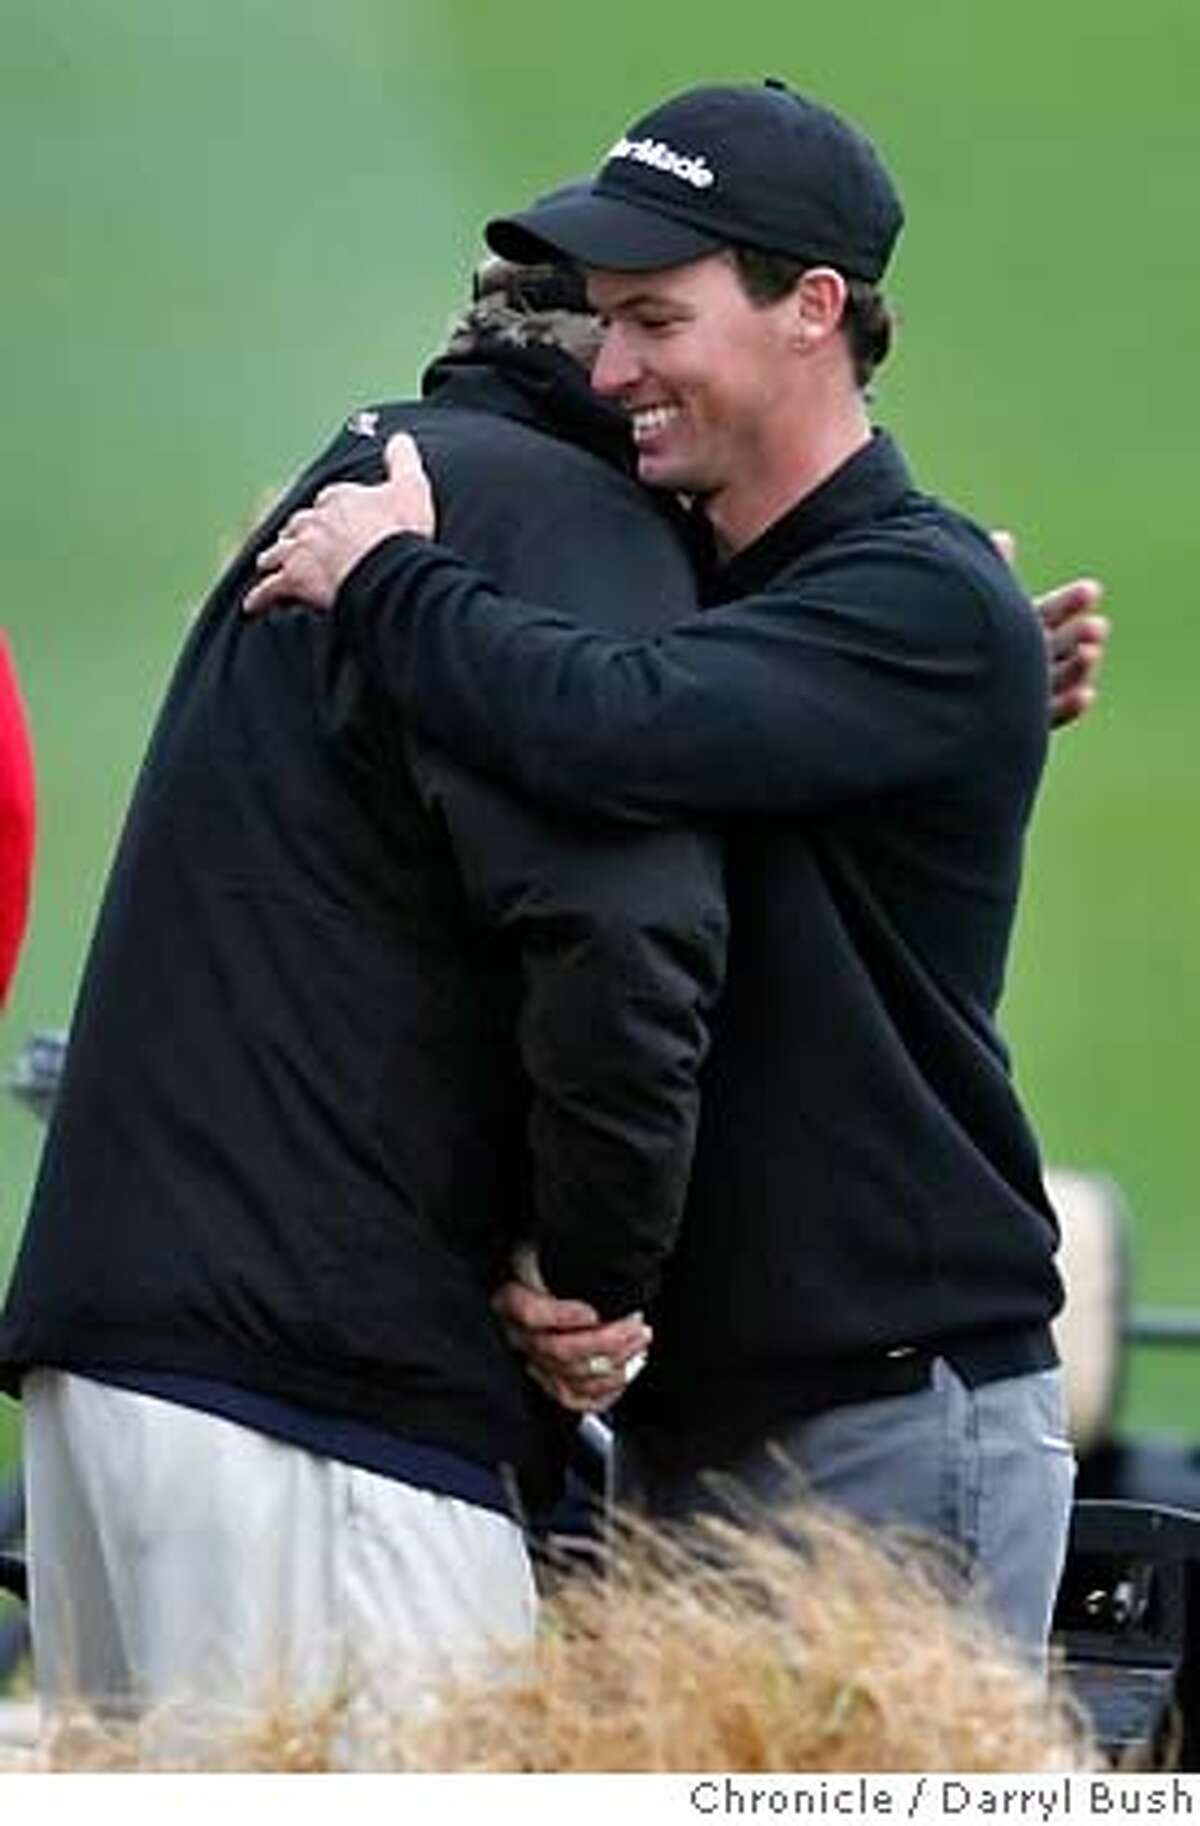 AT&Tgolf_0011_db.JPG Golfer John Mallinger (co-leader) hugs his father, Joe Mallinger after his round as he walks off the 9th green (his 18th hole), during the 1st round, at the 2007 AT&T Pebble Beach National Pro-Am at Pebble Beach Golf Links in Pebble Beach, CA, on Thursday, February, 8, 2007. photo taken: 2/8/07 Darryl Bush / The Chronicle ** (cq) MANDATORY CREDIT FOR PHOTOG AND SF CHRONICLE/ -MAGS OUT